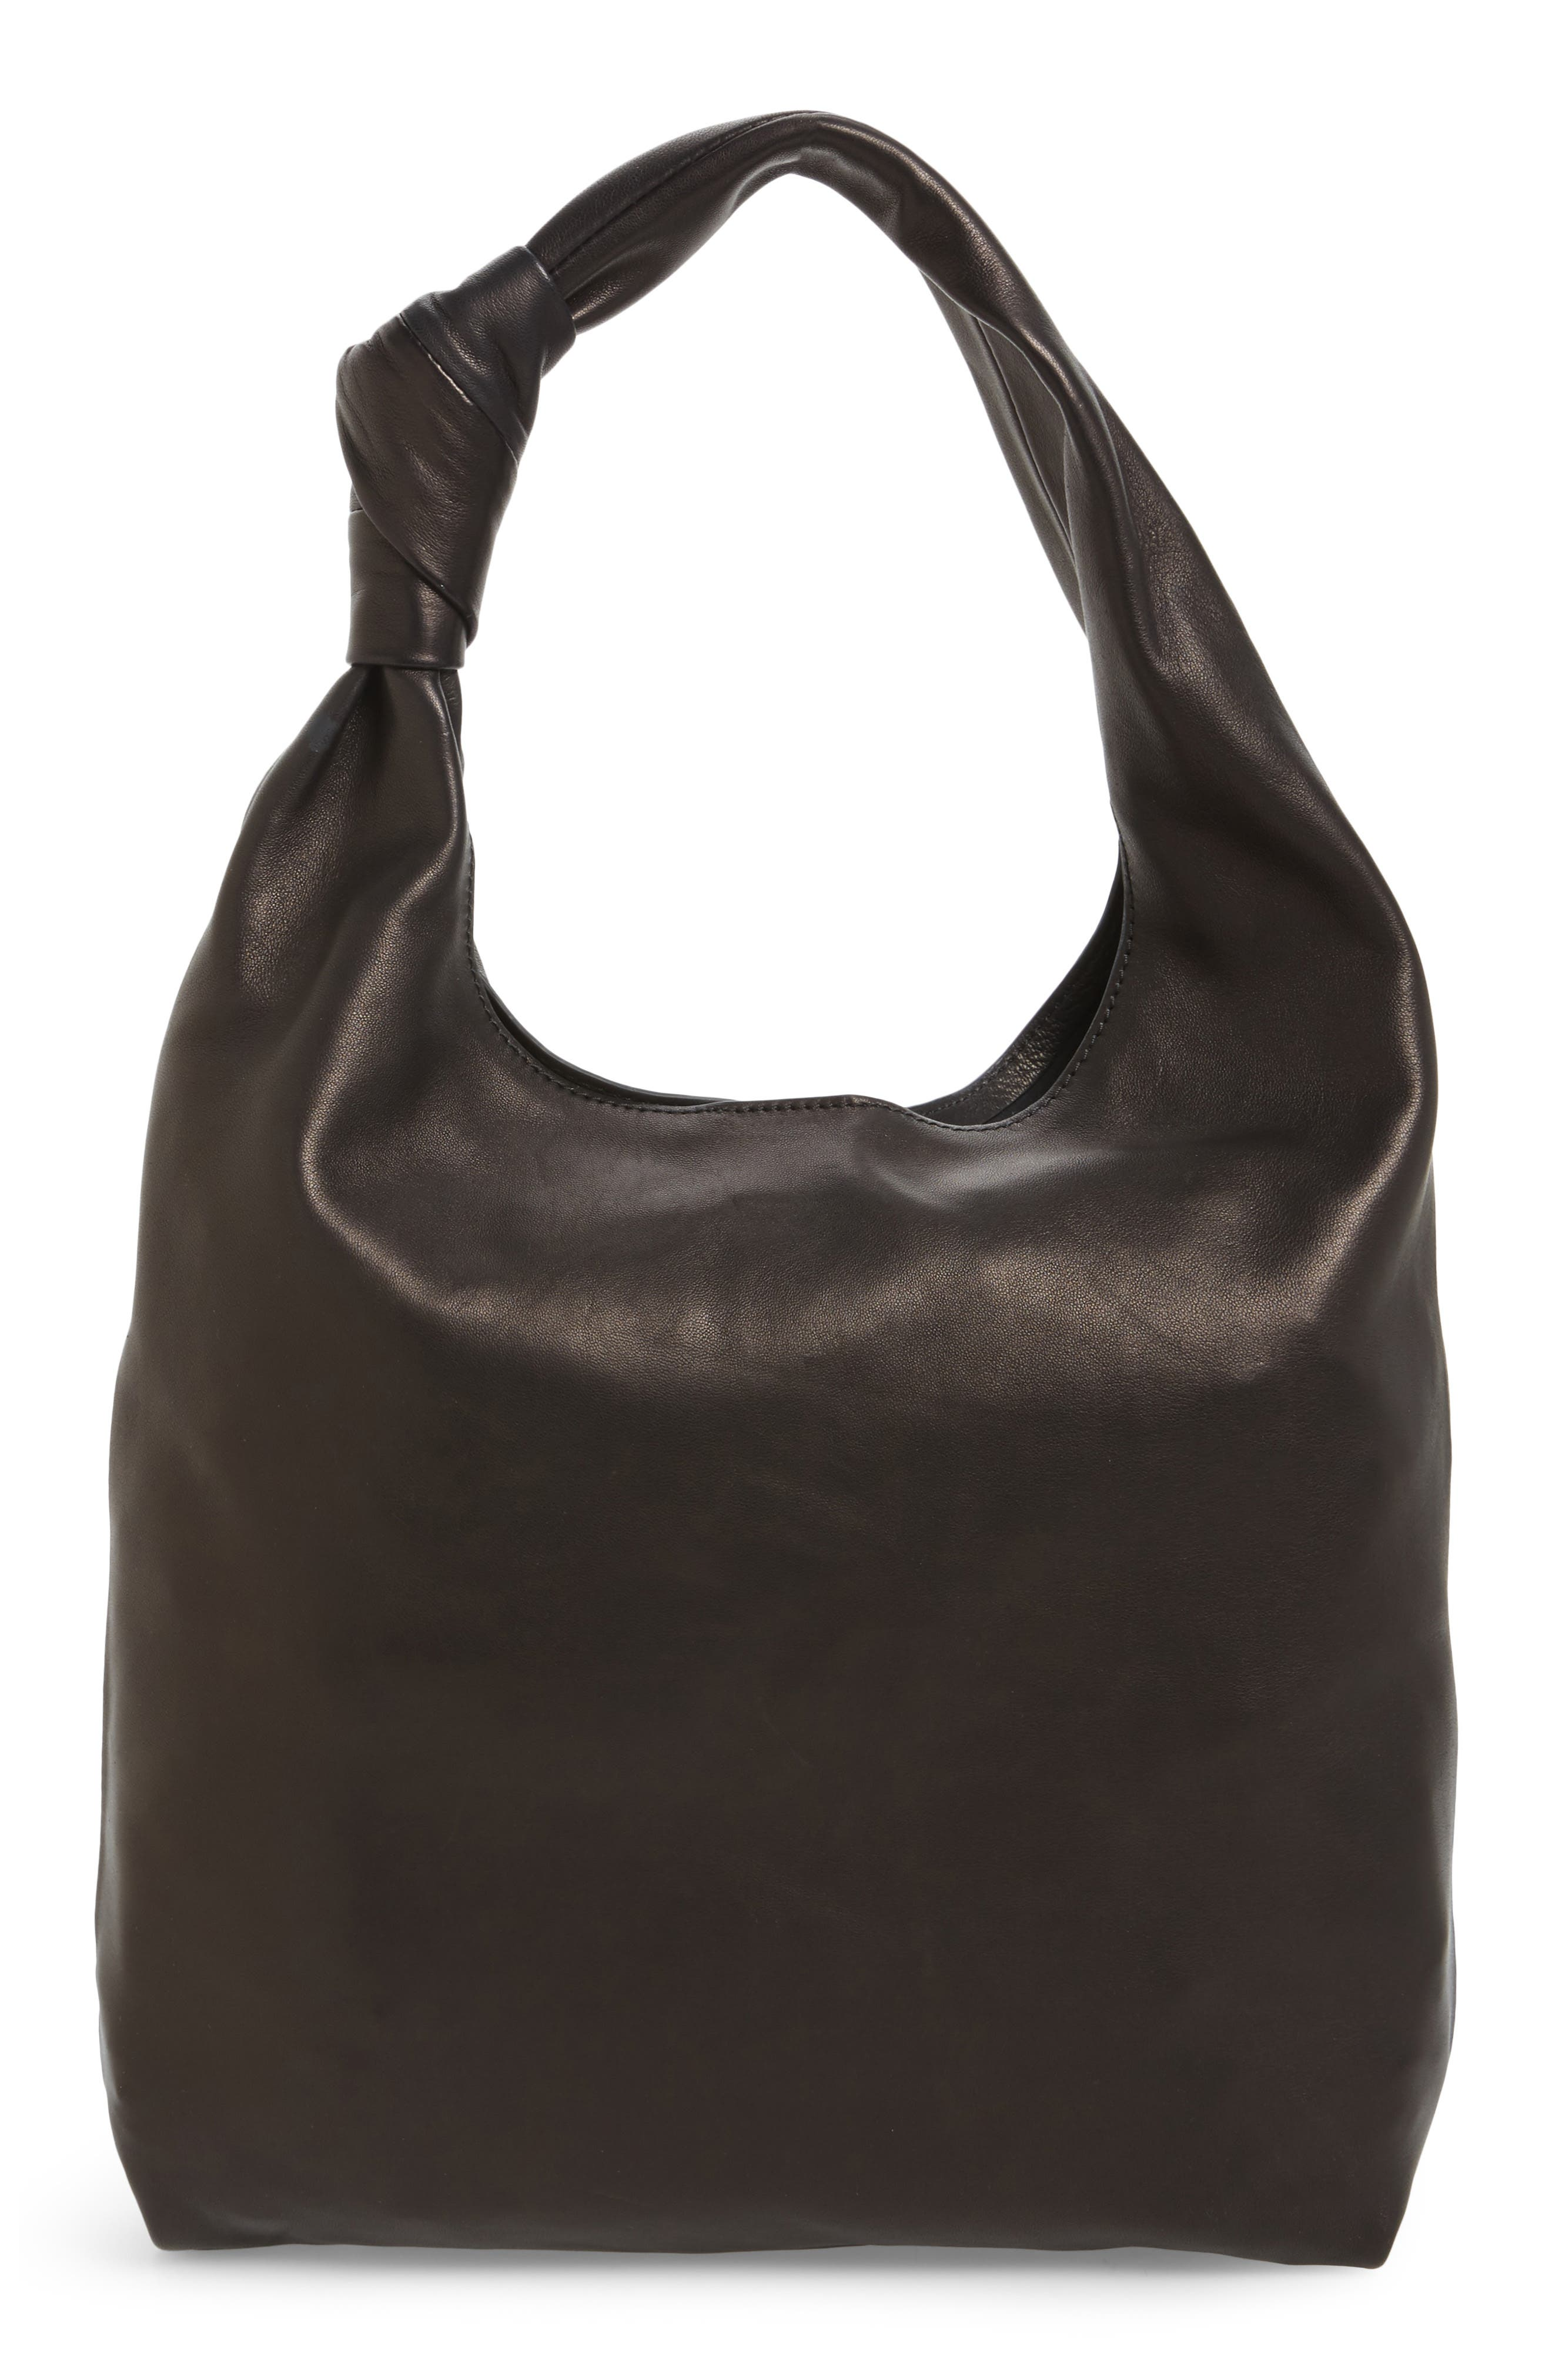 Loeffler Randall Knot Leather Tote